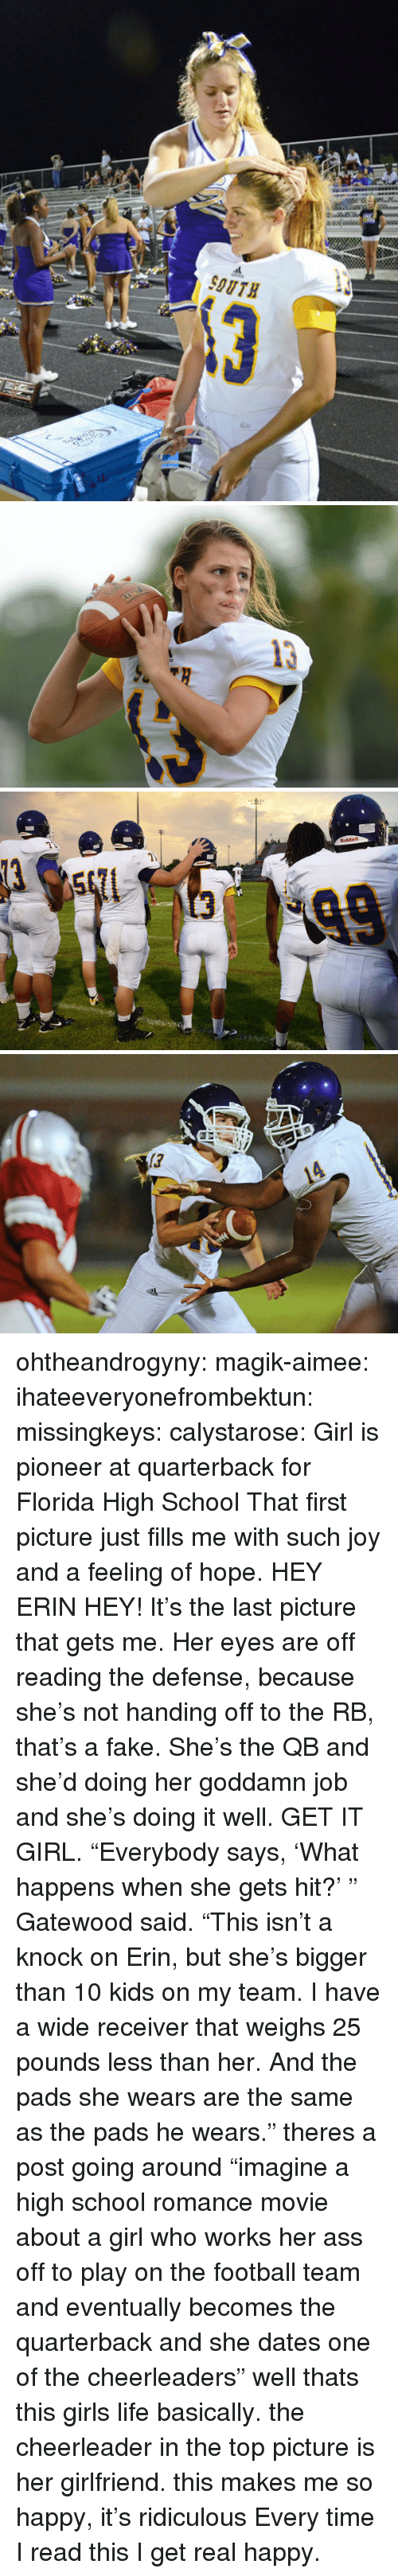 """Ass, Fake, and Football: ohtheandrogyny: magik-aimee:  ihateeveryonefrombektun:  missingkeys:  calystarose:   Girl is pioneer at quarterback for Florida High School  That first picture just fills me with such joy and a feeling of hope.  HEY ERIN HEY! It's the last picture that gets me. Her eyes are off reading the defense, because she's not handing off to the RB, that's a fake. She's the QB and she'd doing her goddamn job and she's doing it well. GET IT GIRL.  """"Everybody says, 'What happens when she gets hit?' """" Gatewood said. """"This isn't a knock on Erin, but she's bigger than 10 kids on my team. I have a wide receiver that weighs 25 pounds less than her. And the pads she wears are the same as the pads he wears.""""   theres a post going around """"imagine a high school romance movie about a girl who works her ass off to play on the football team and eventually becomes the quarterback and she dates one of the cheerleaders"""" well thats this girls life basically. the cheerleader in the top picture is her girlfriend.  this makes me so happy, it's ridiculous   Every time I read this I get real happy."""